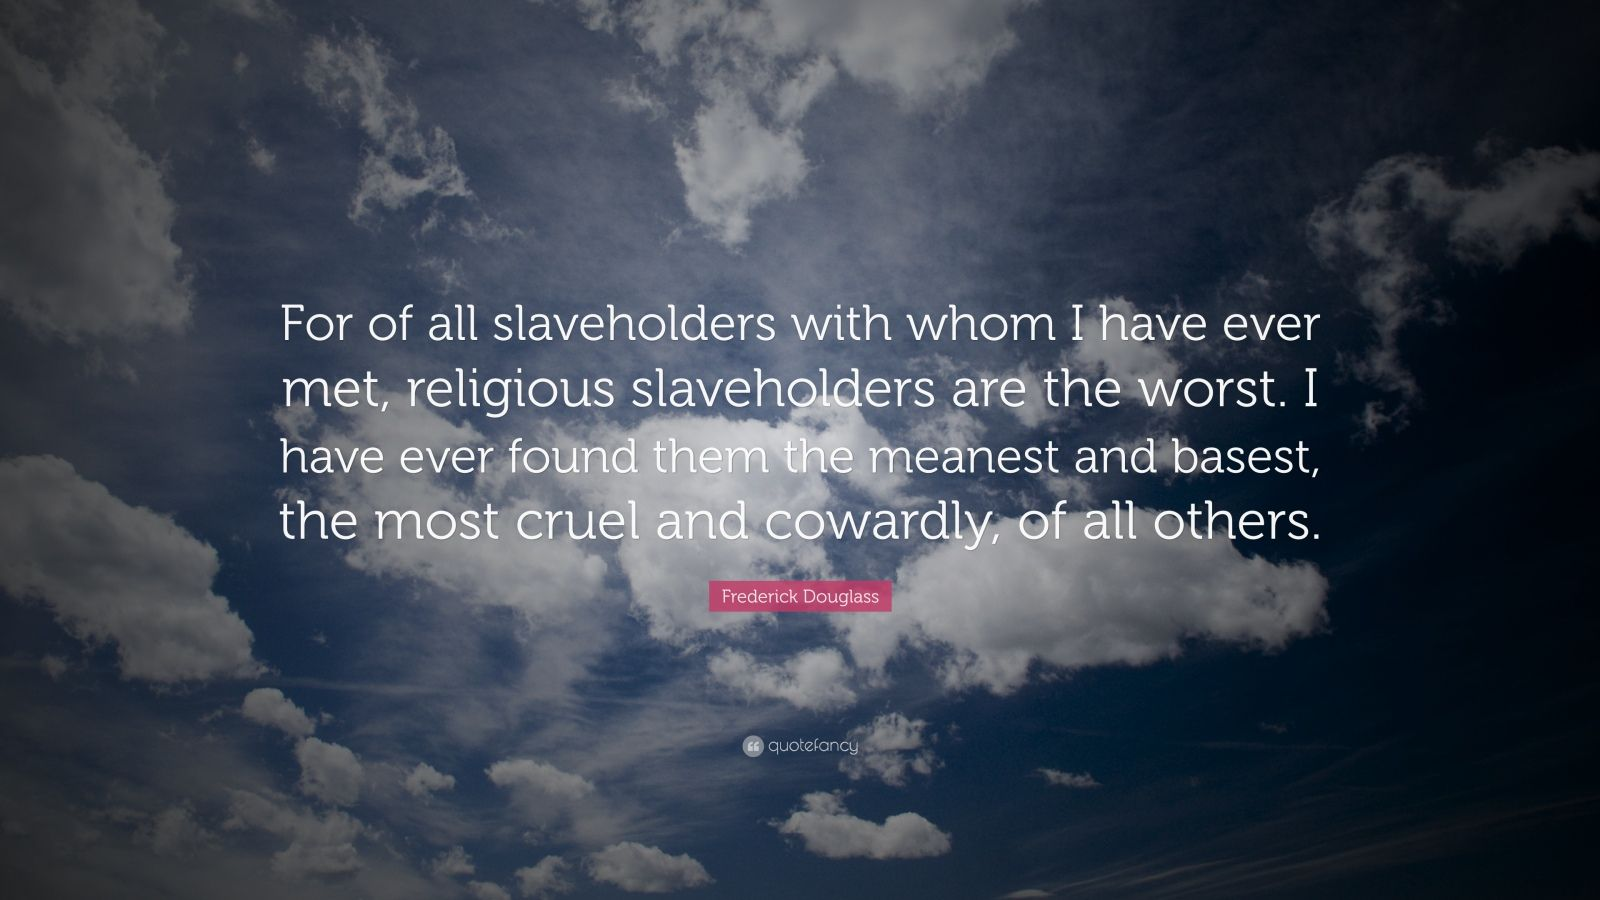 """Frederick Douglass Quote: """"For of all slaveholders with whom I have ever met, religious slaveholders are the worst. I have ever found them the meanest and basest, the most cruel and cowardly, of all others."""""""